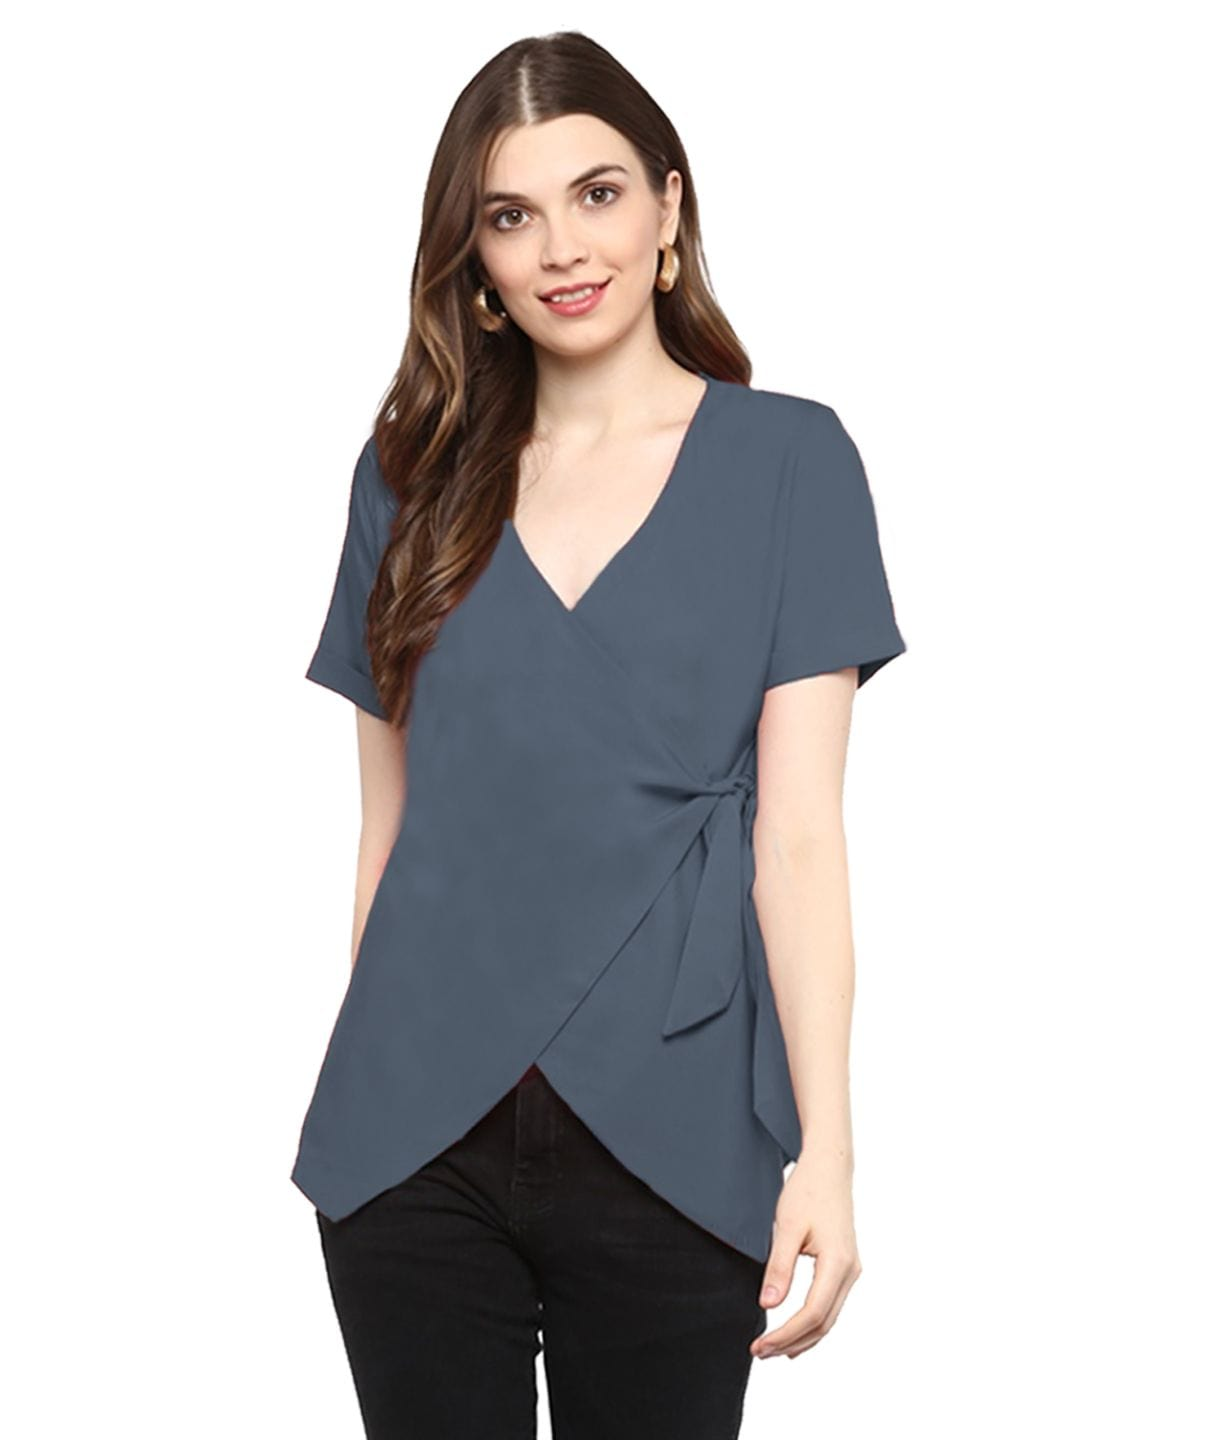 Solid Grey Wrap Maternity Top